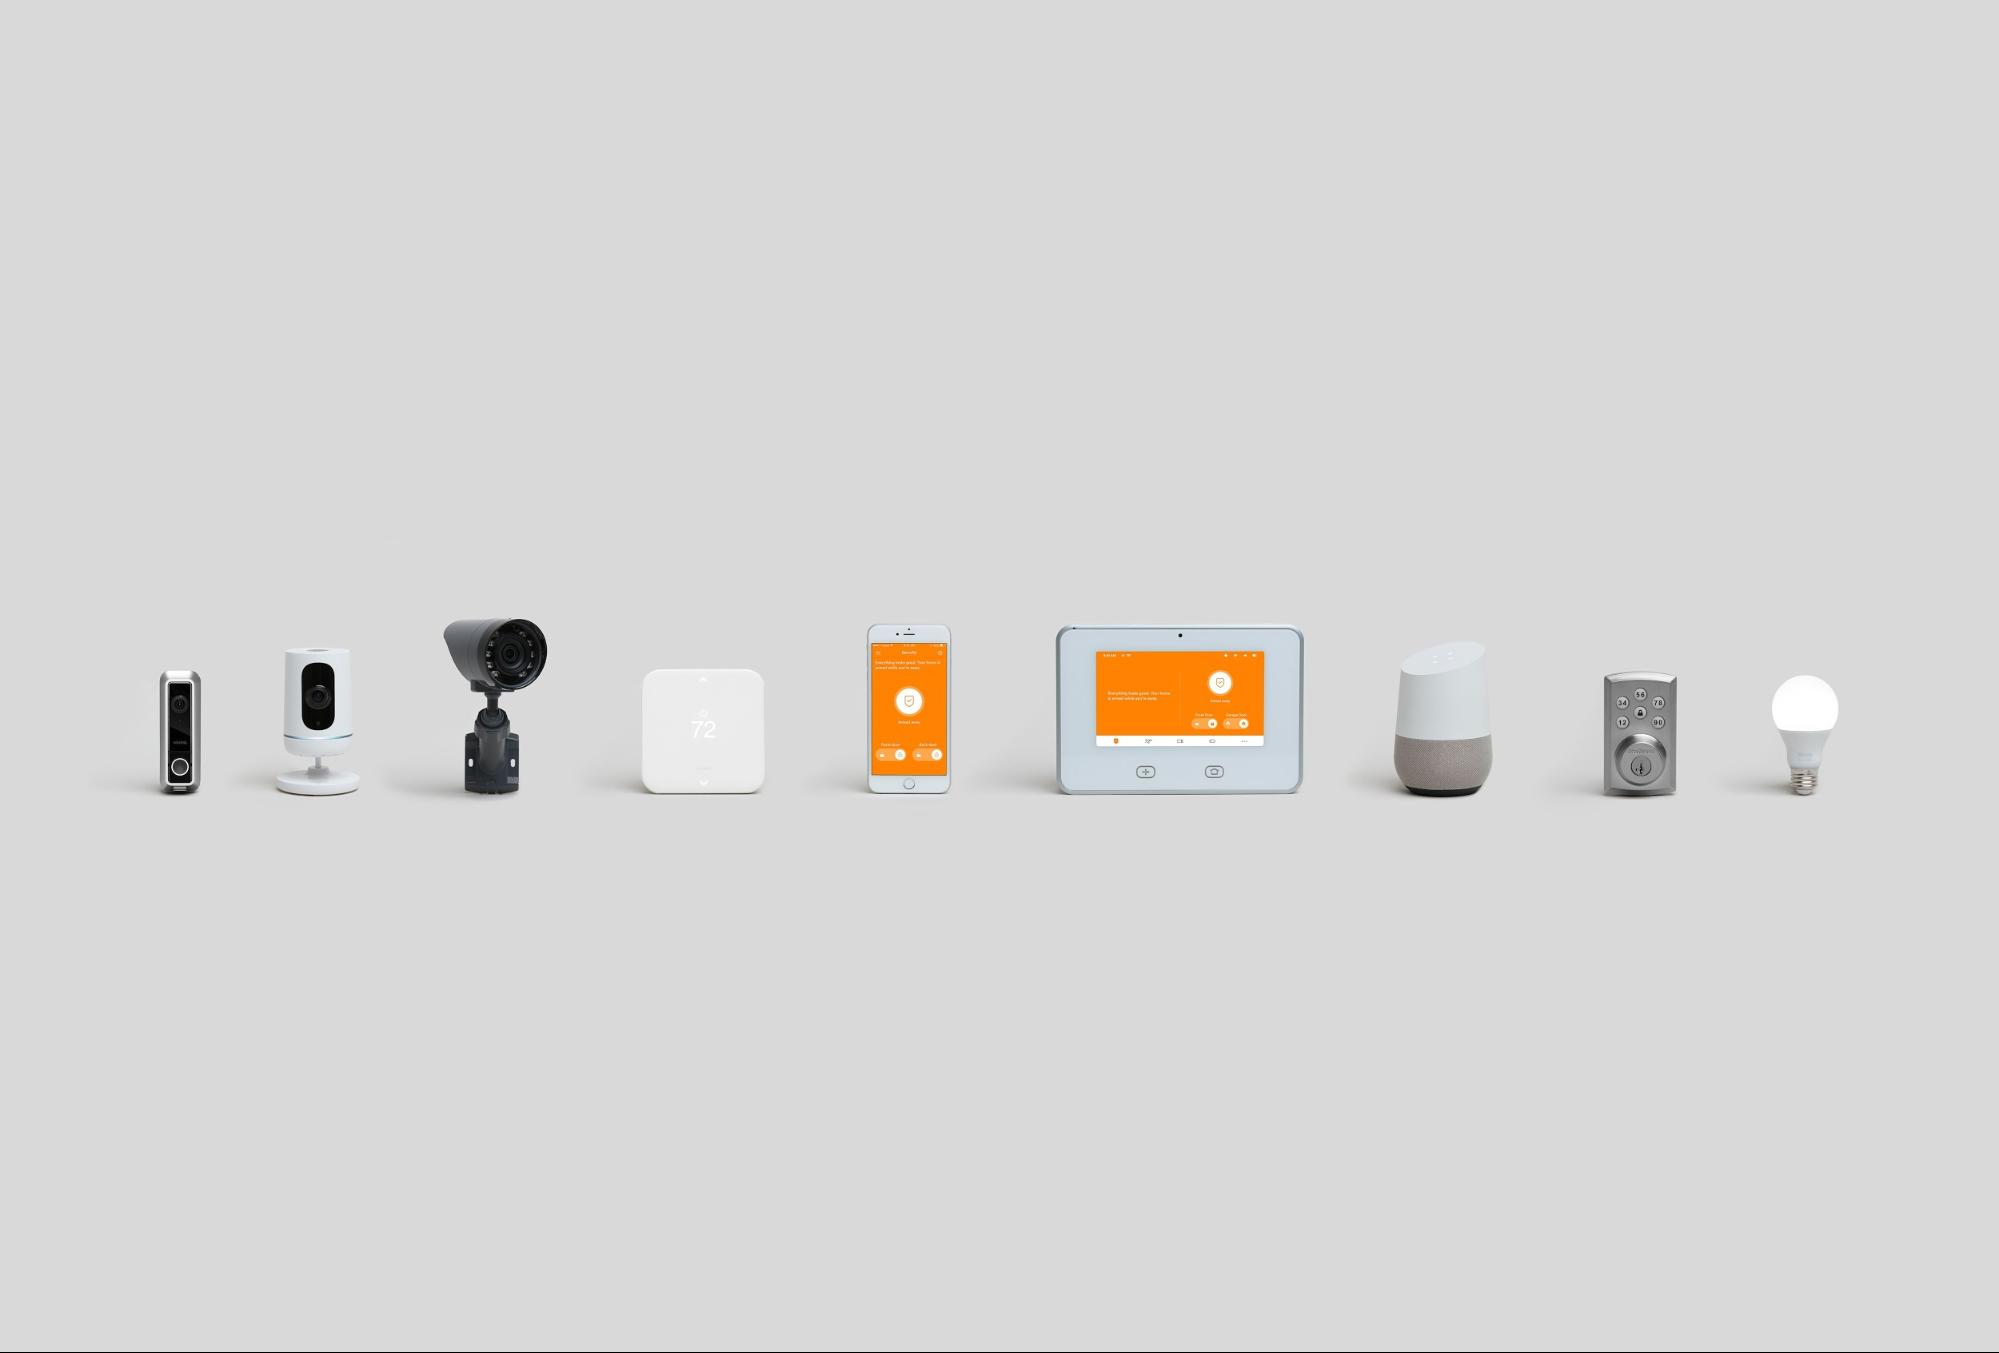 Vivint Home Security Review 2019: Does Vivint Have the Best